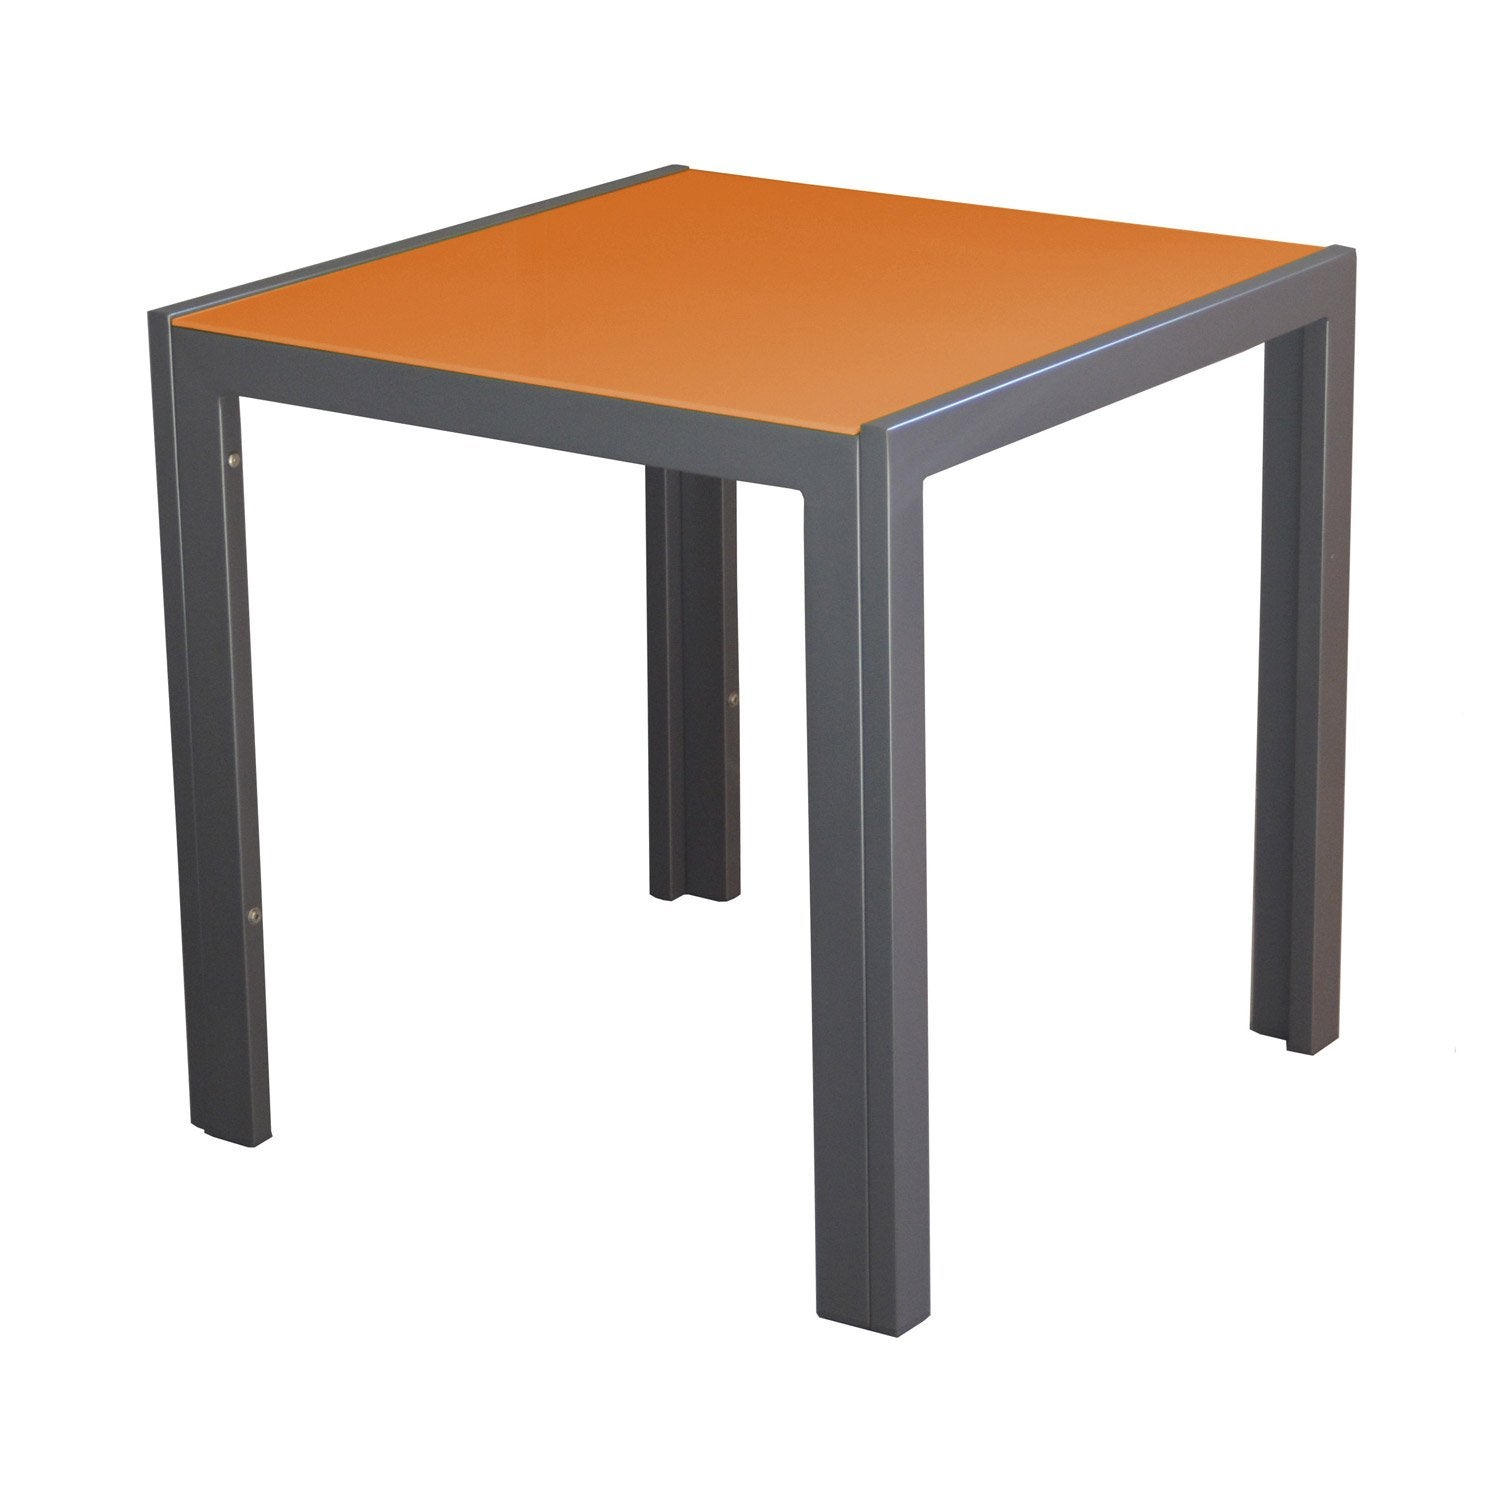 Table basse carr e grey orange 2 personnes leroy merlin for Table basse orange